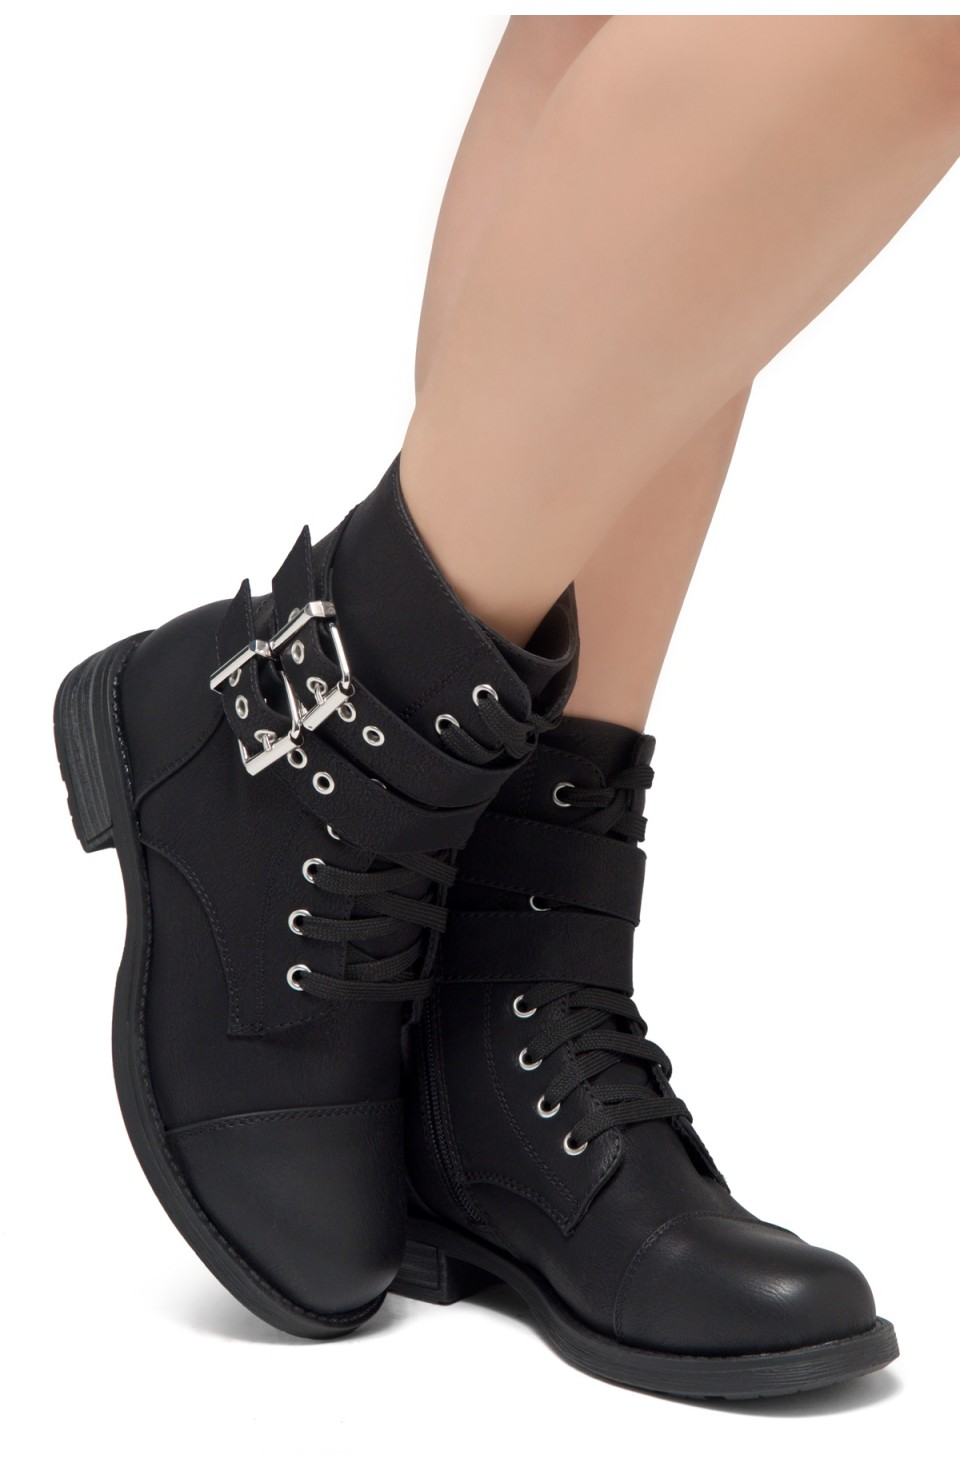 Women's Florence 2 Military Lace up, Double Buckled, Middle Calf Combat Boots(1721/Black)